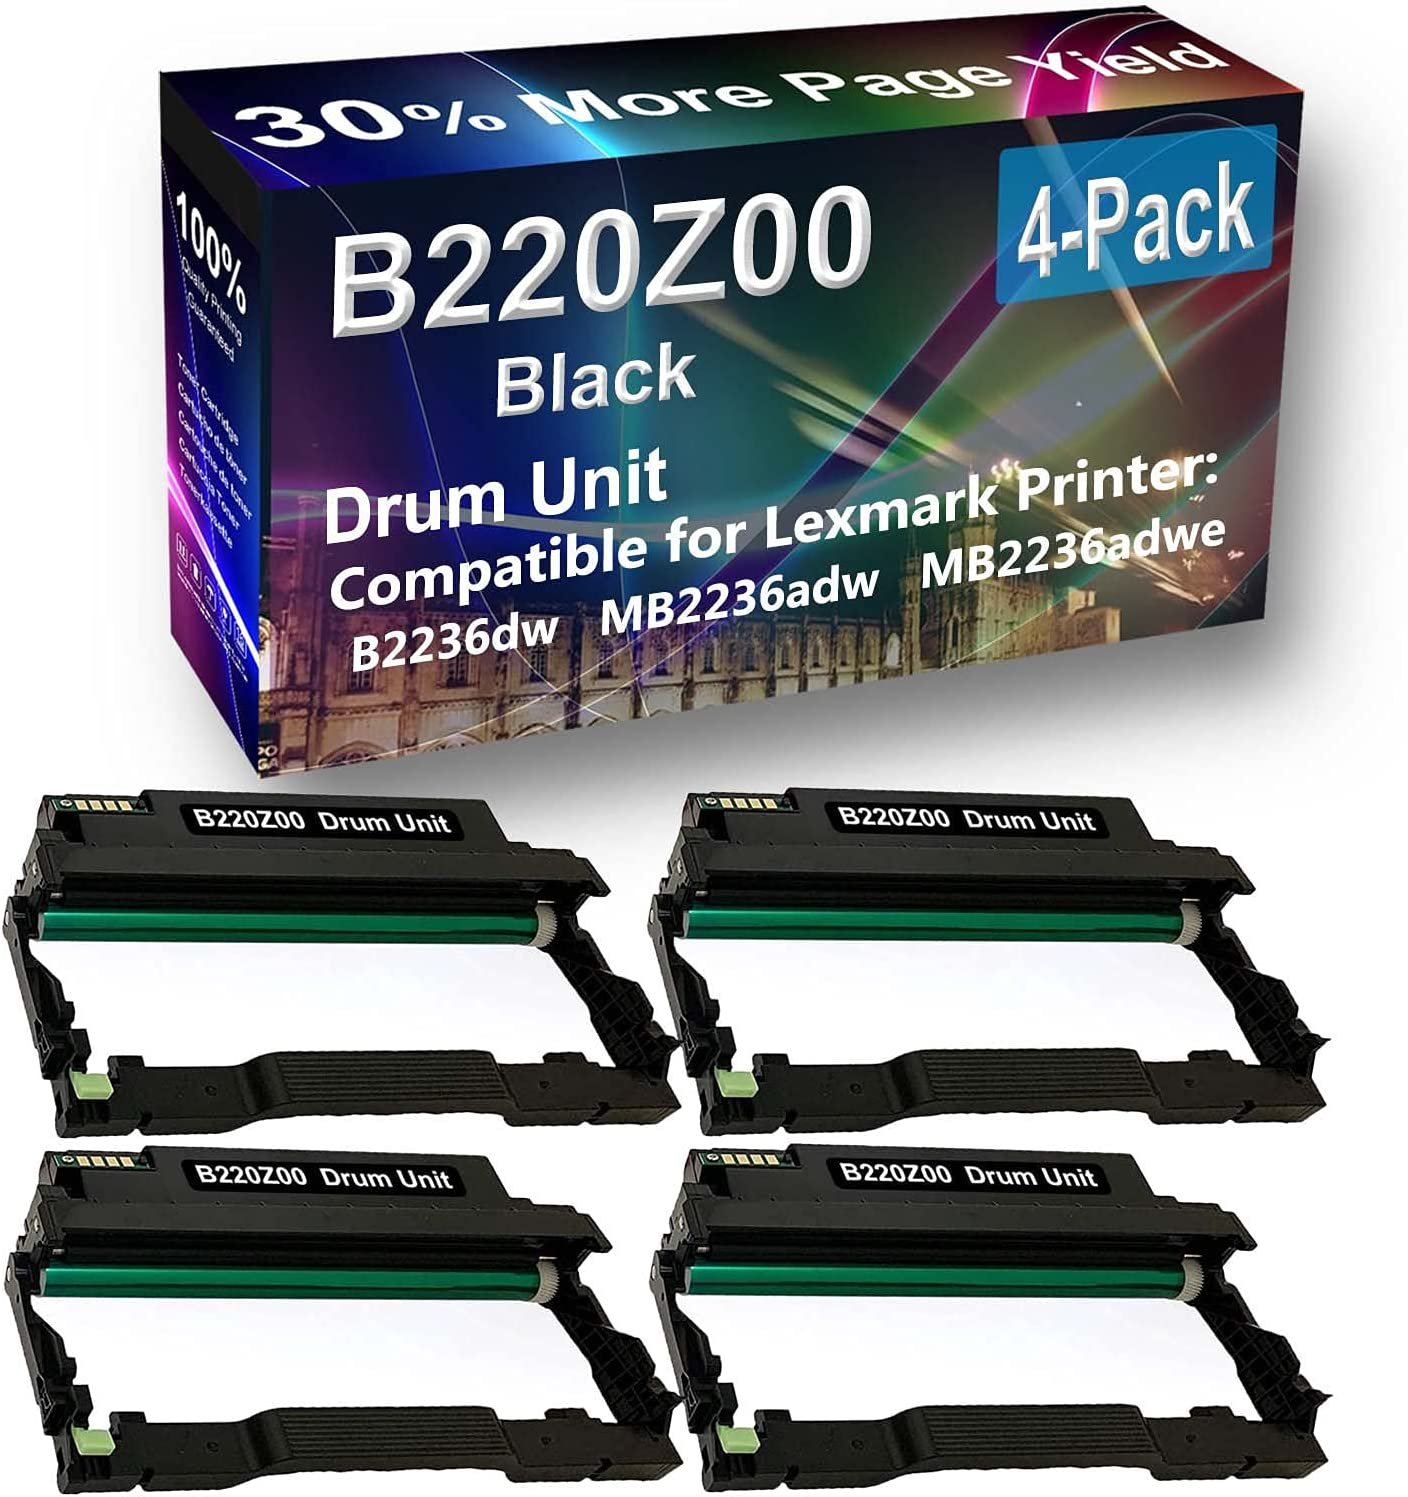 4-Pack Compatible Drum Unit (Black) Replacement for Lexmark E250X22G Drum Kit use for Lexmark E352 E352DN, E450, 450N, 450DN Printer